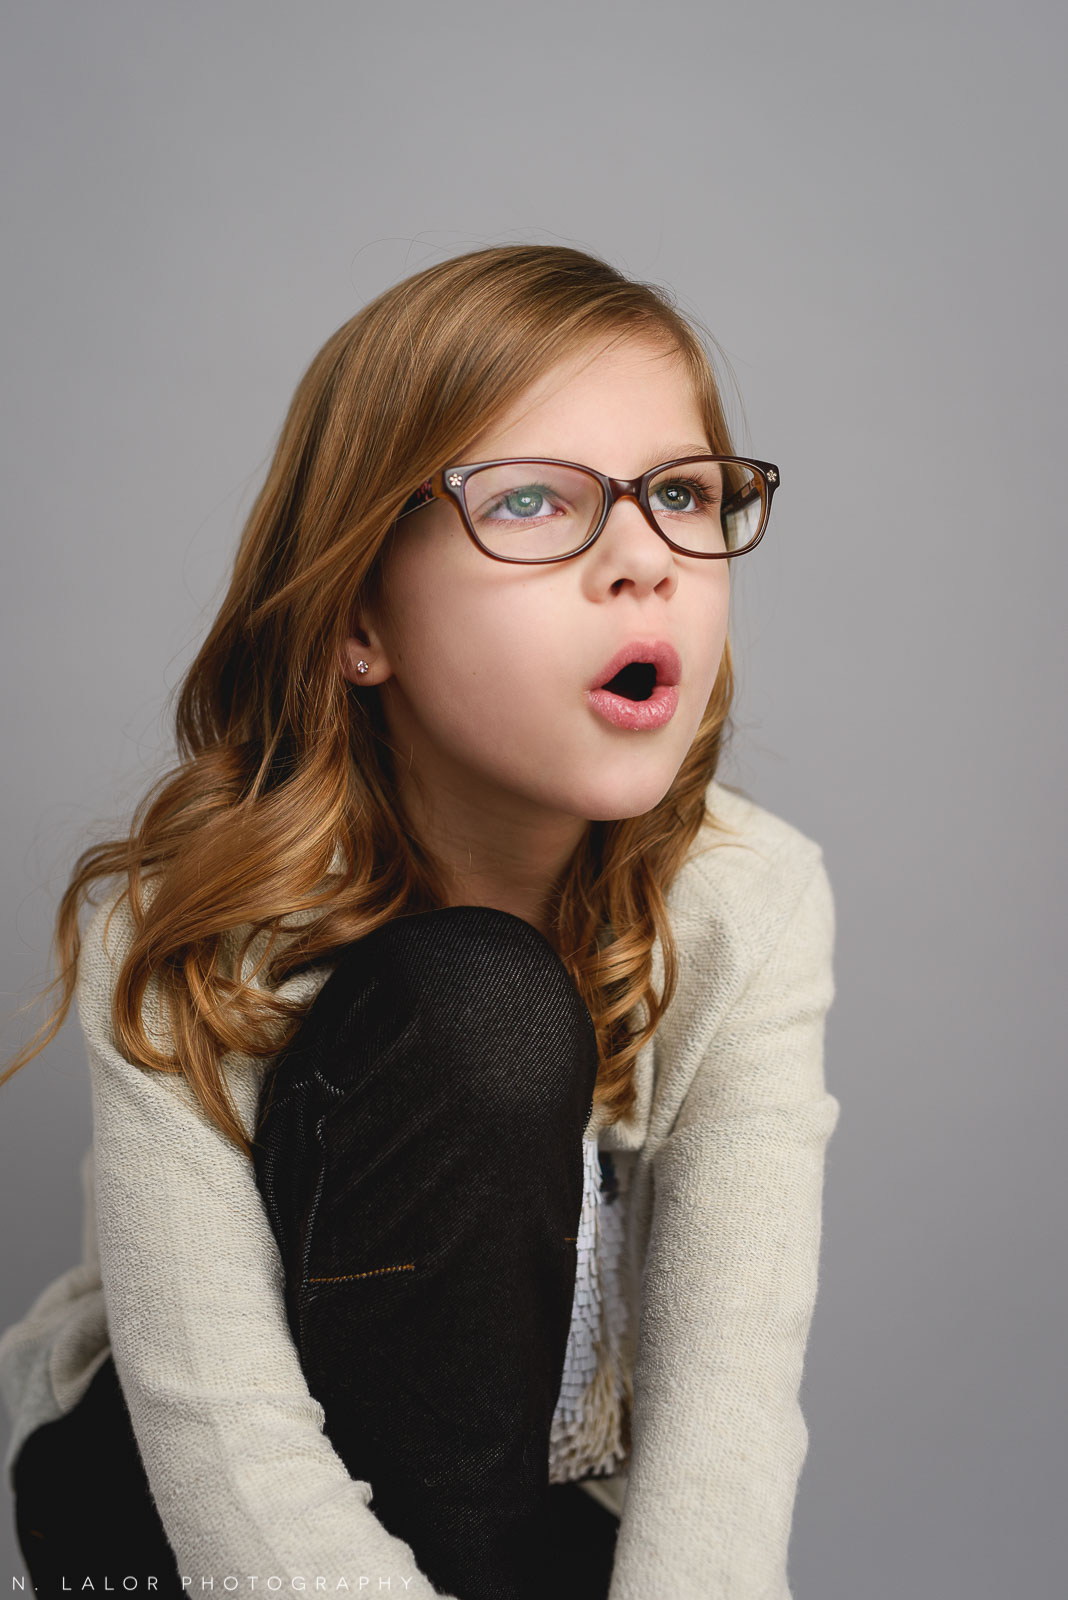 Making faces. Tween photo session with N. Lalor Photography. Studio located in Greenwich, Connecticut.